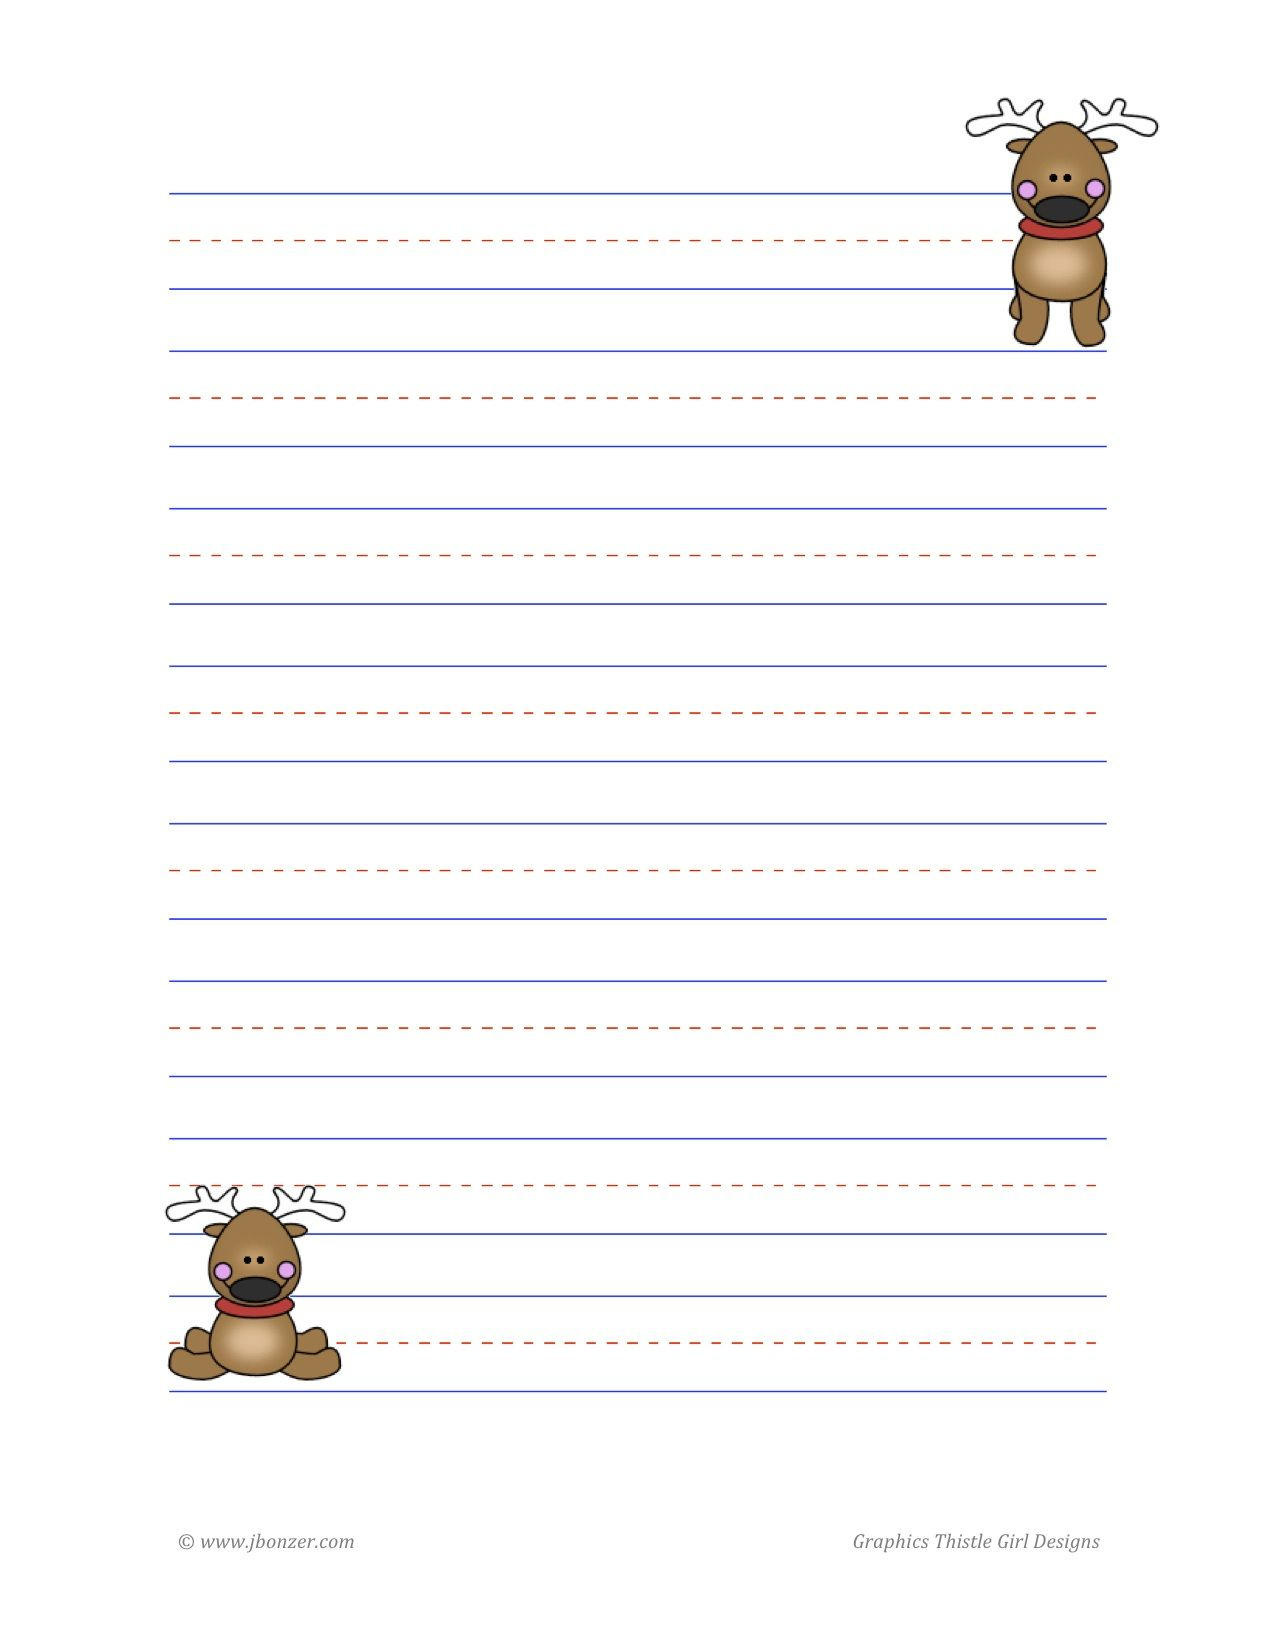 Reindeer Lined Writing Paper